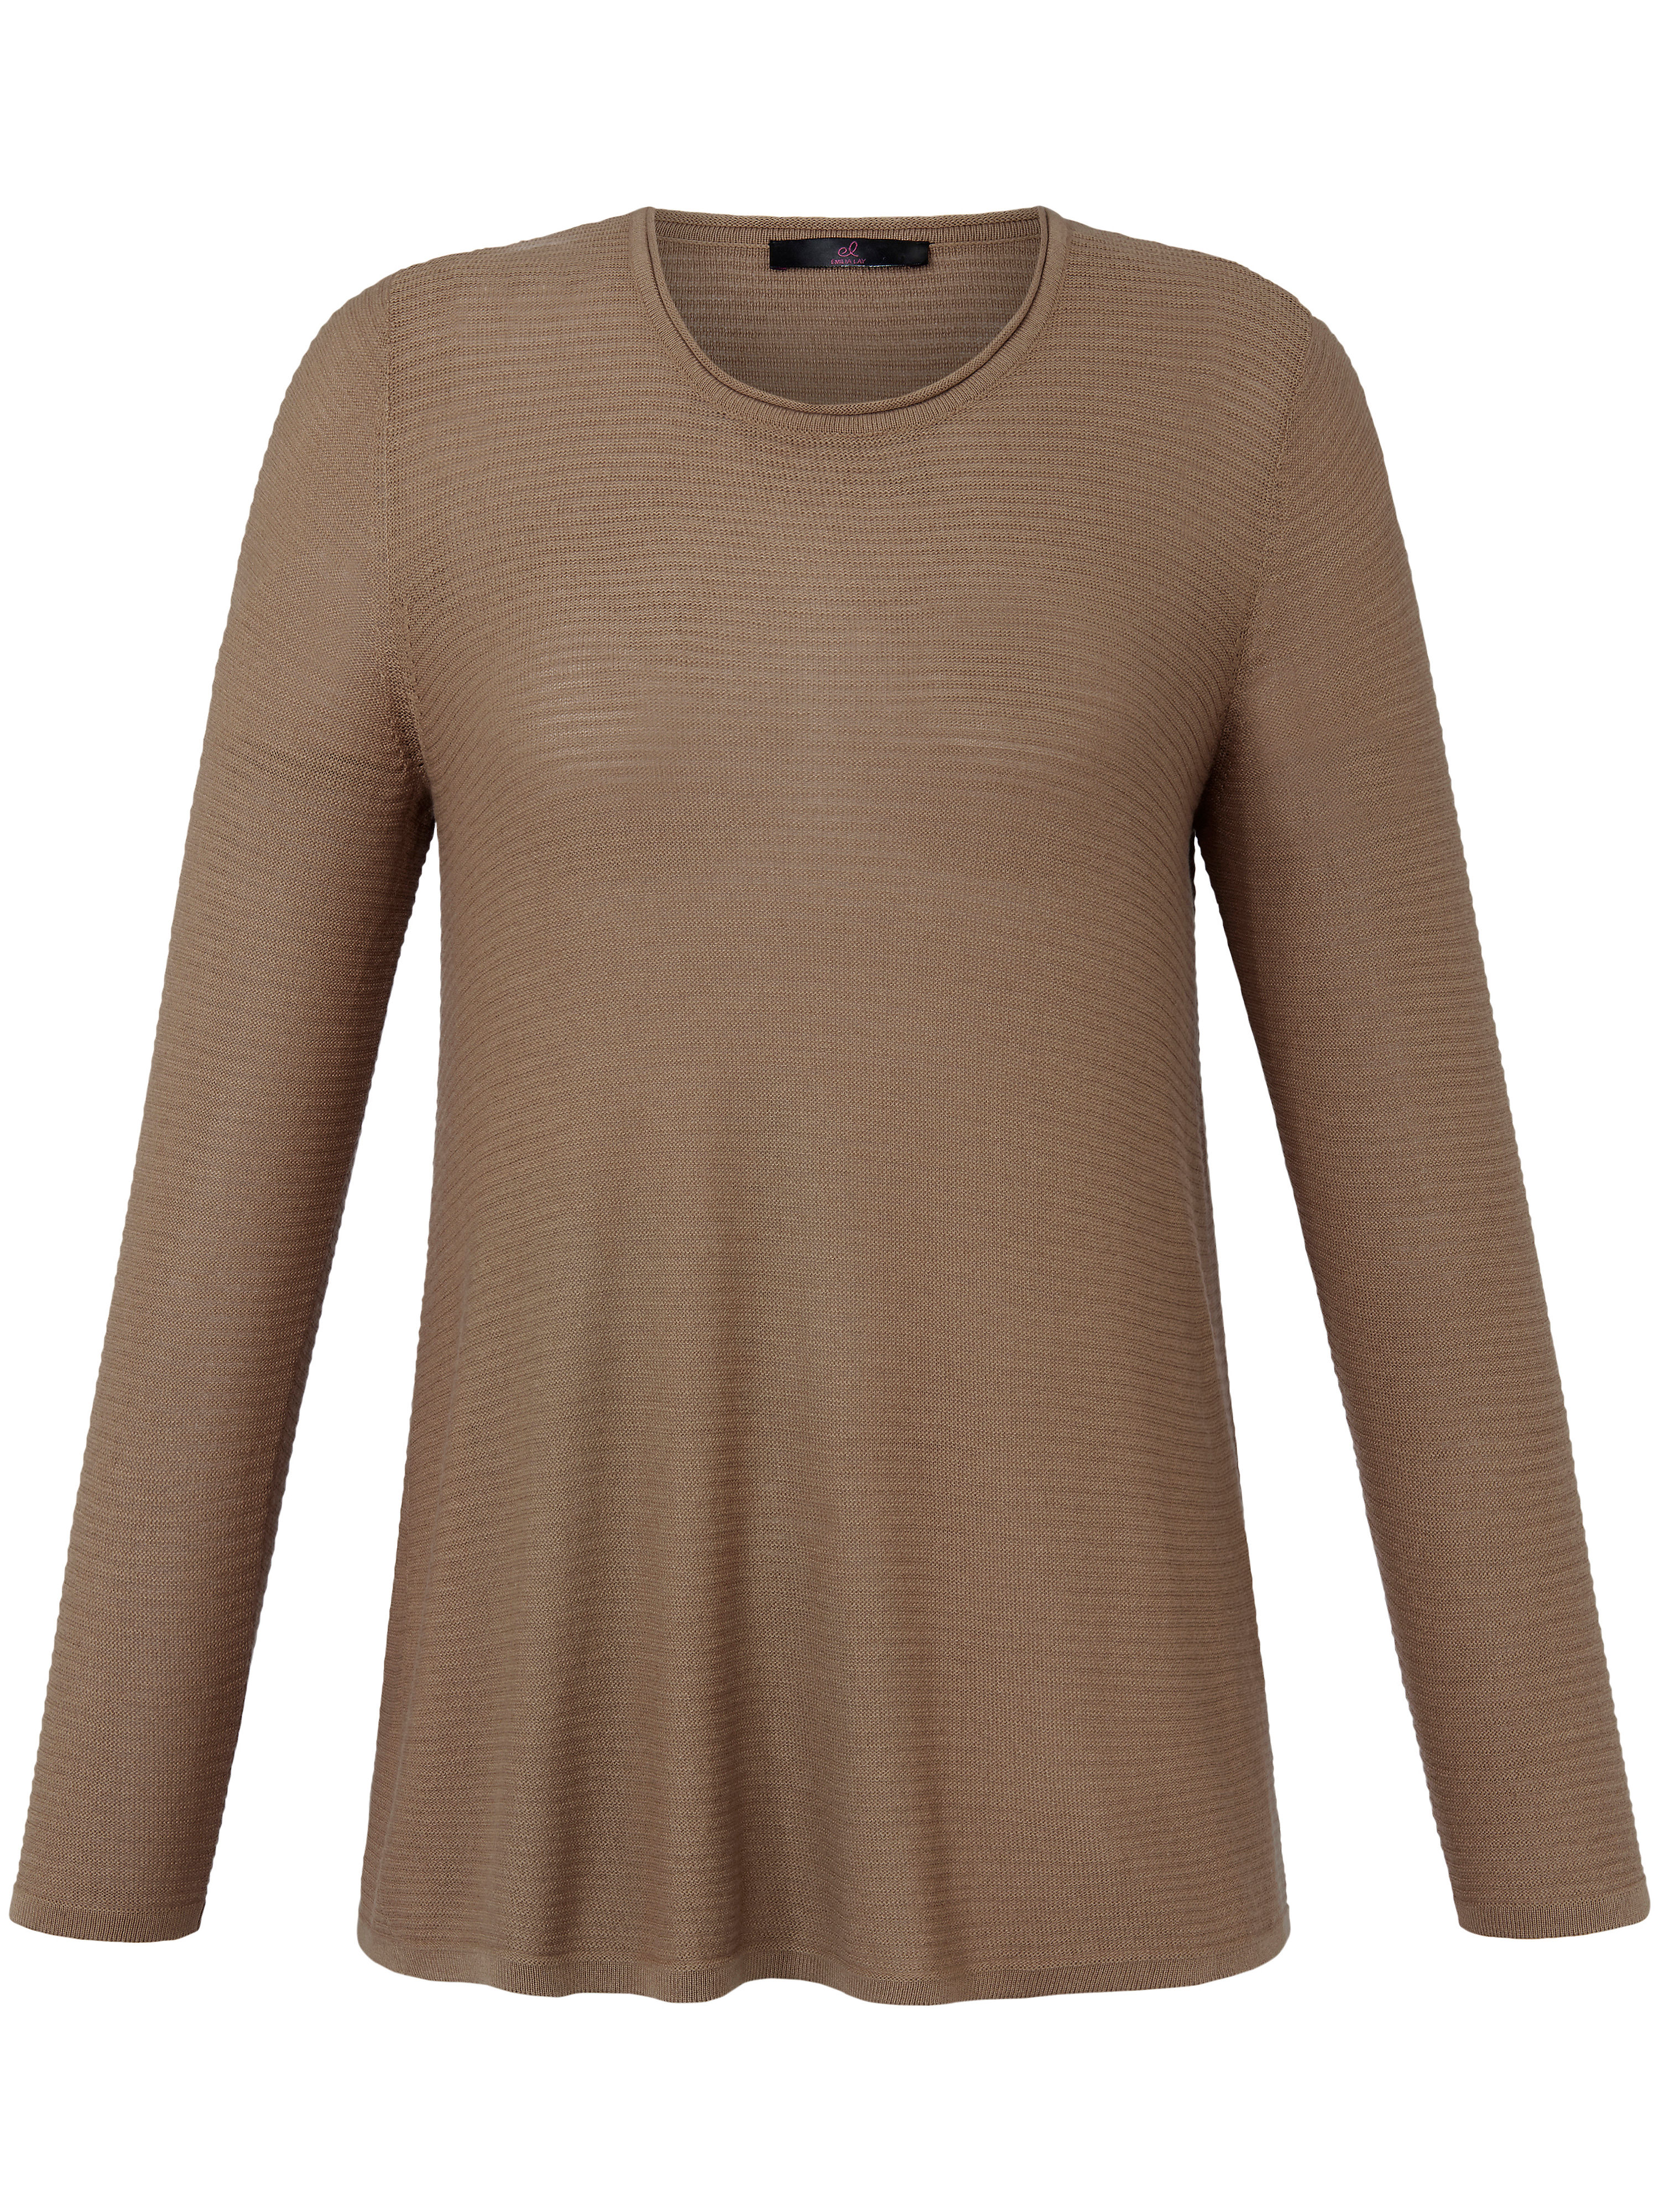 Le pull 100% laine vierge  Anna Aura beige taille 52